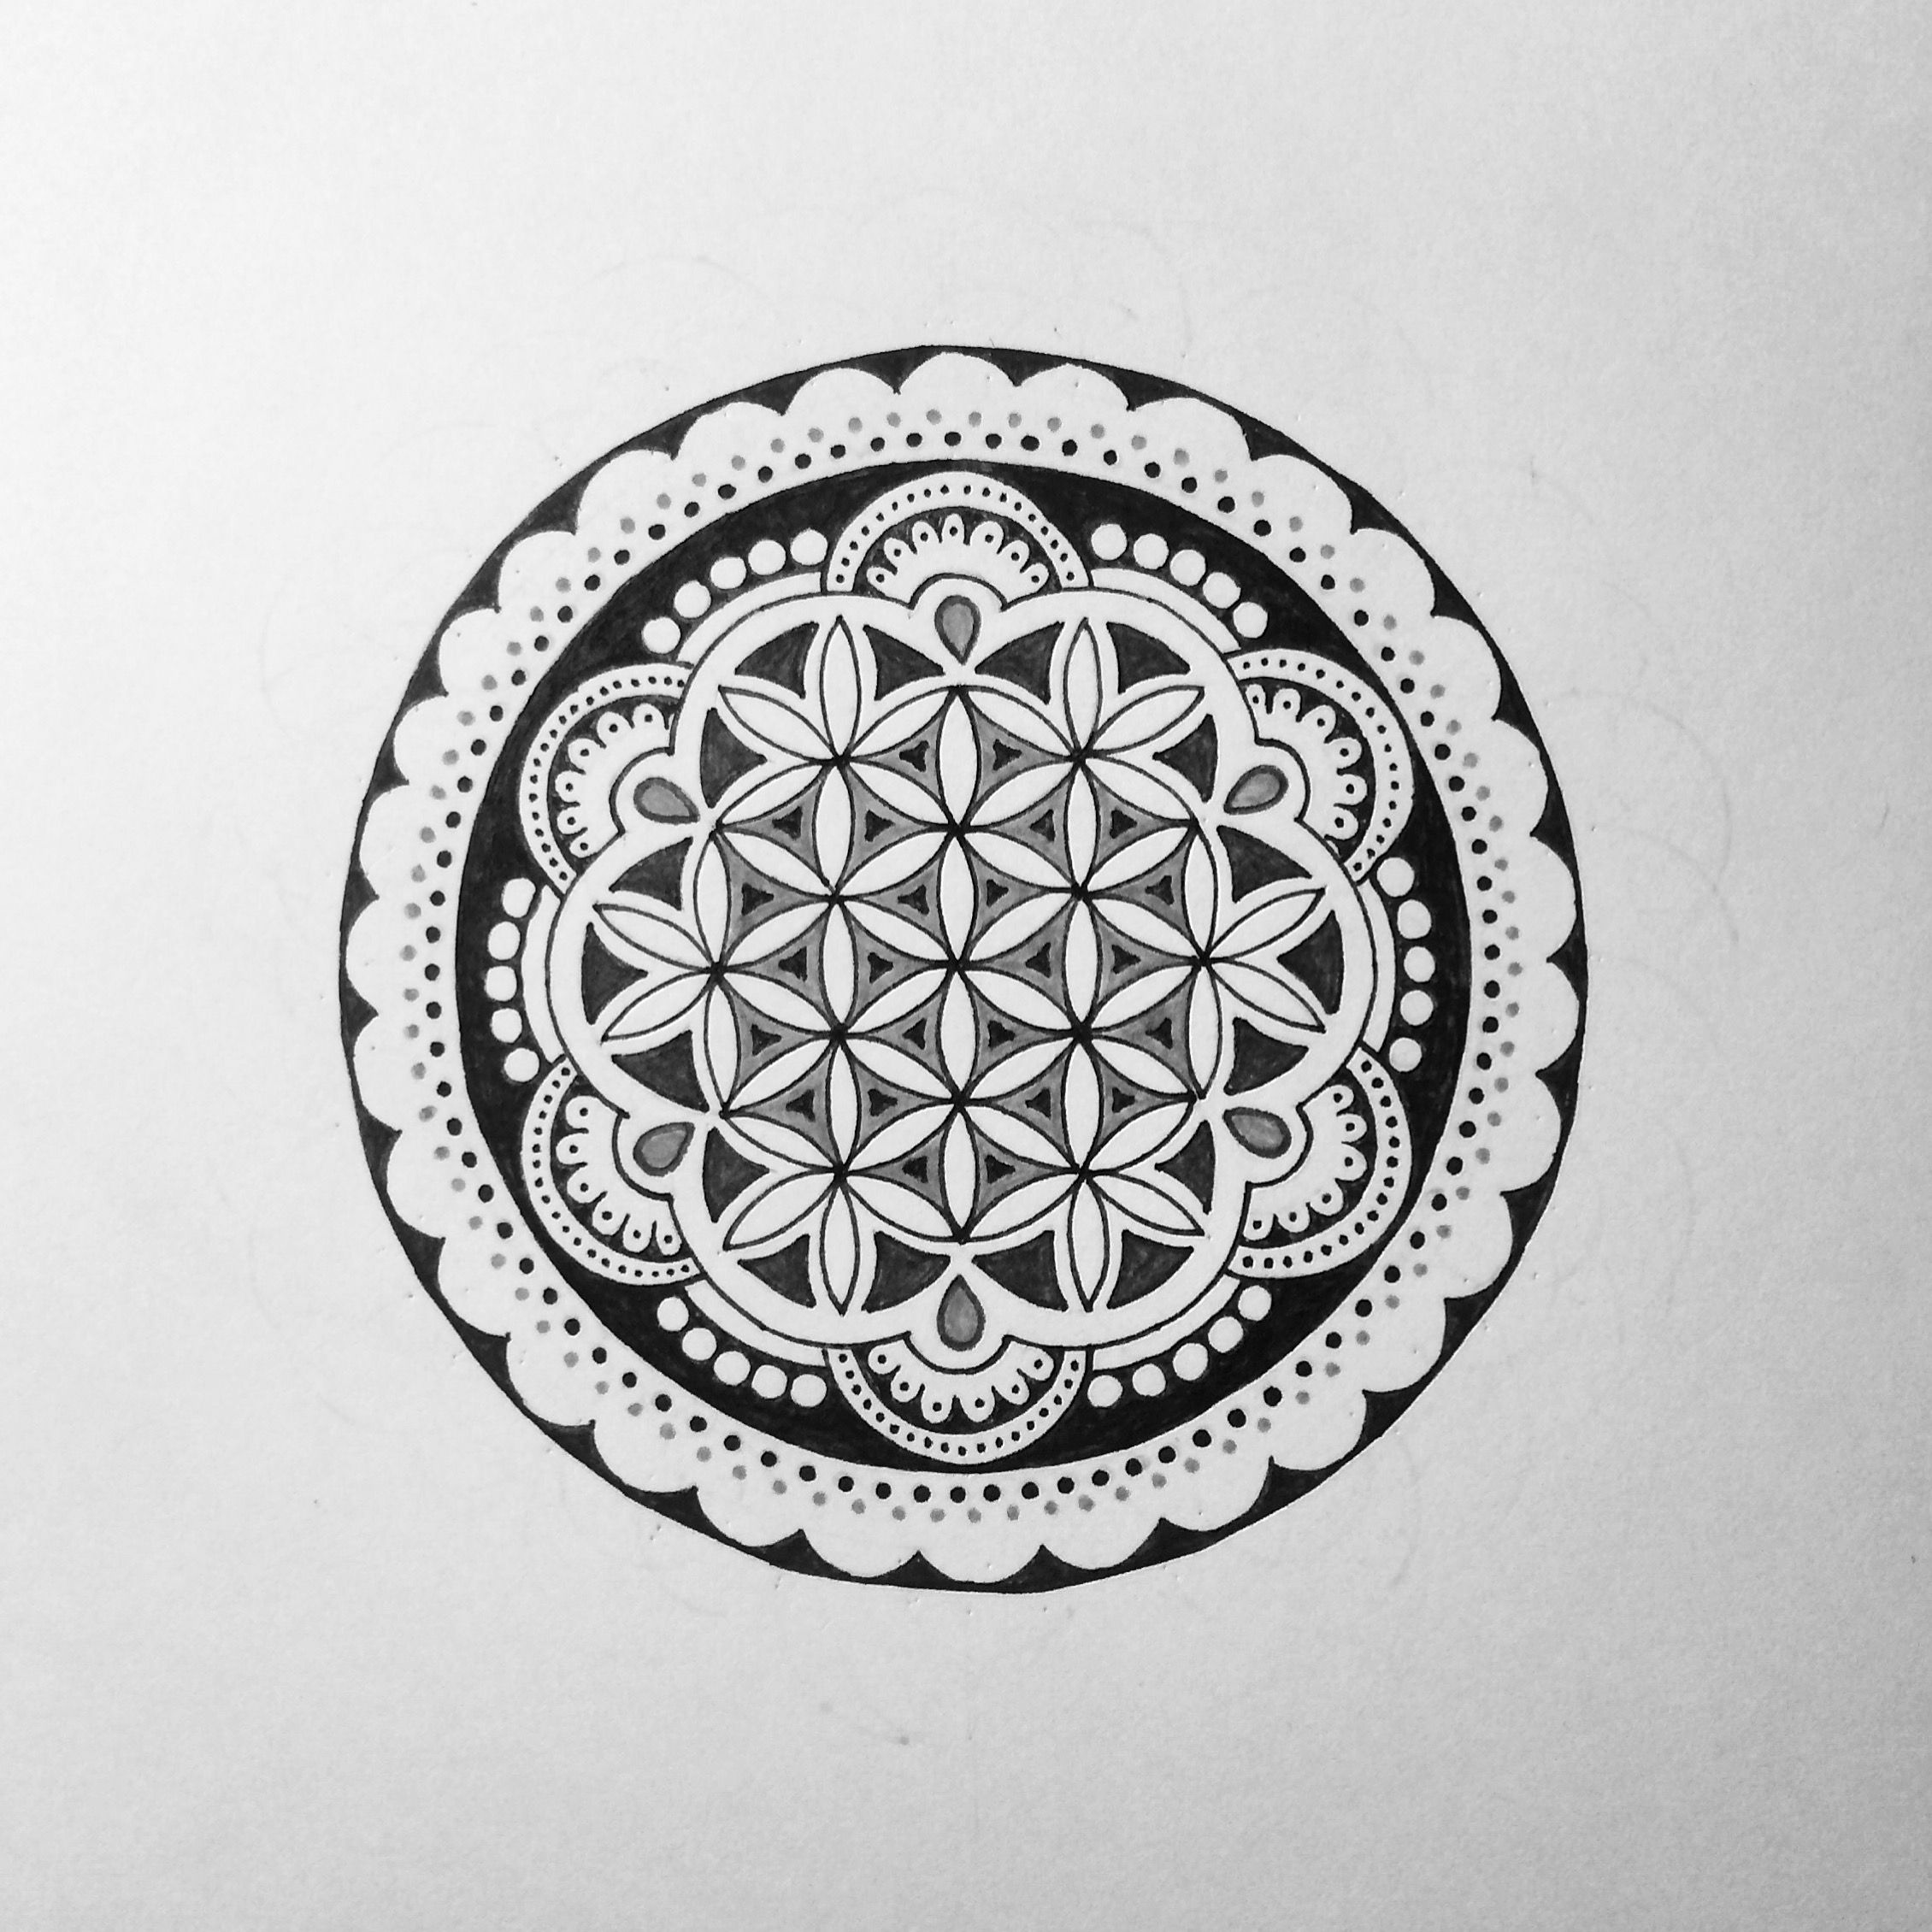 a flower of life mandala doodle i did for a tattoo design mandala tattoo tattoos. Black Bedroom Furniture Sets. Home Design Ideas